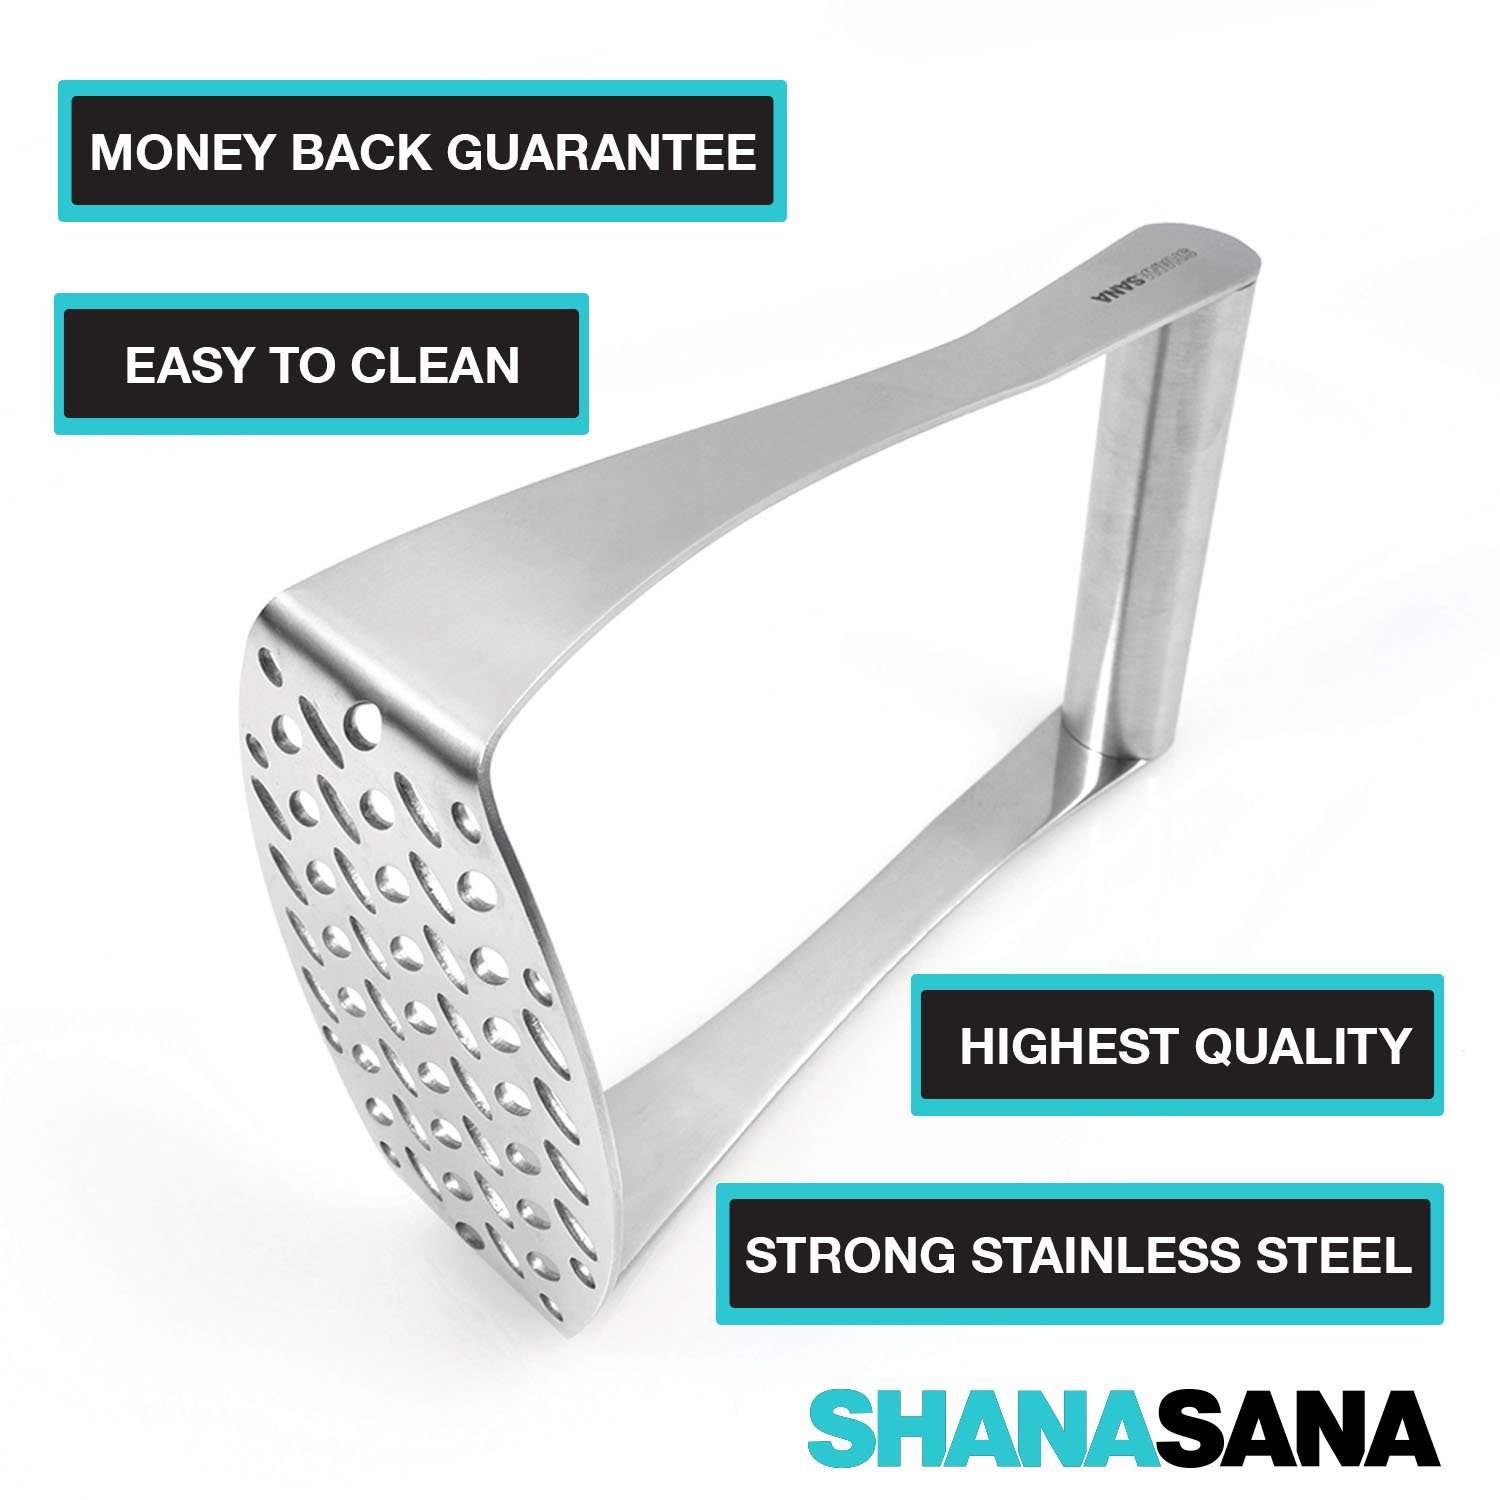 Flattening Chicken Heavy Duty Potato Masher and Much More Vegetables Perfect for Mashed Potatoes Wide Efficient Innovative Design STAINLESS STEEL Shanasana 4335495014